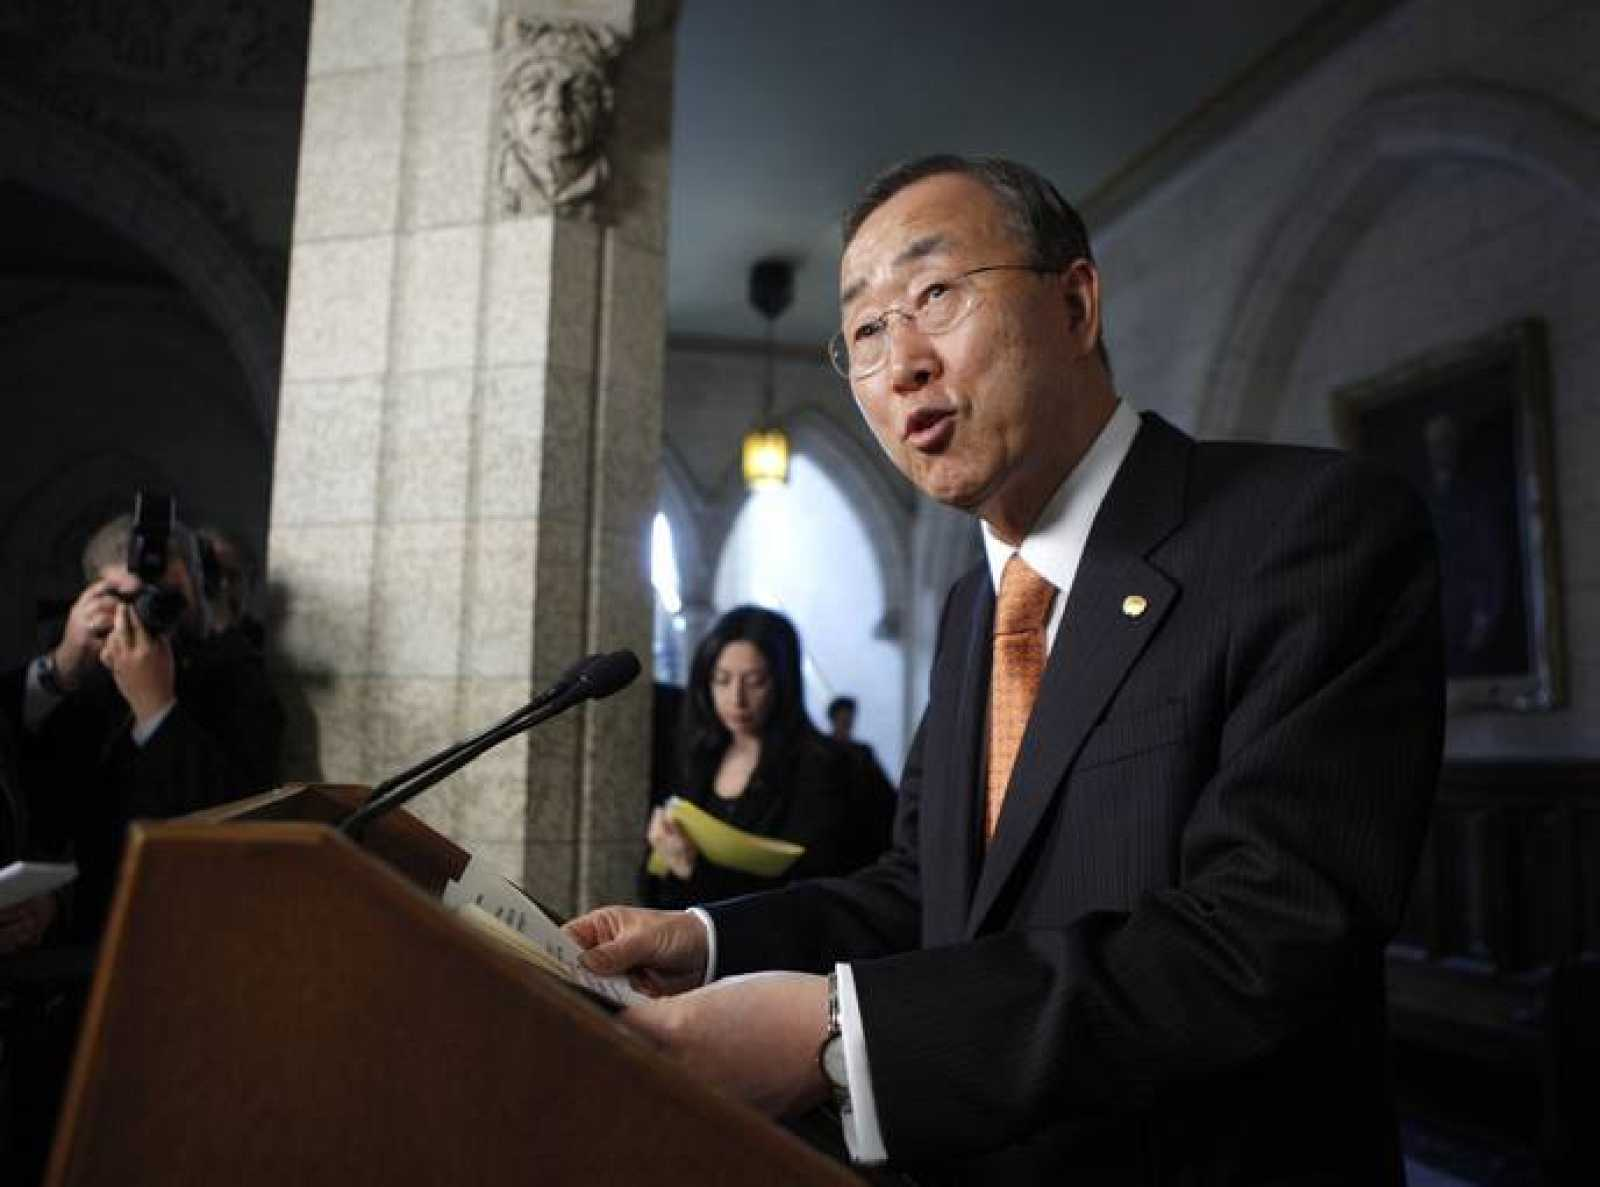 United Nations Secretary-General Ban Ki-moon speaks during a news conference on Parliament Hill in Ottawa